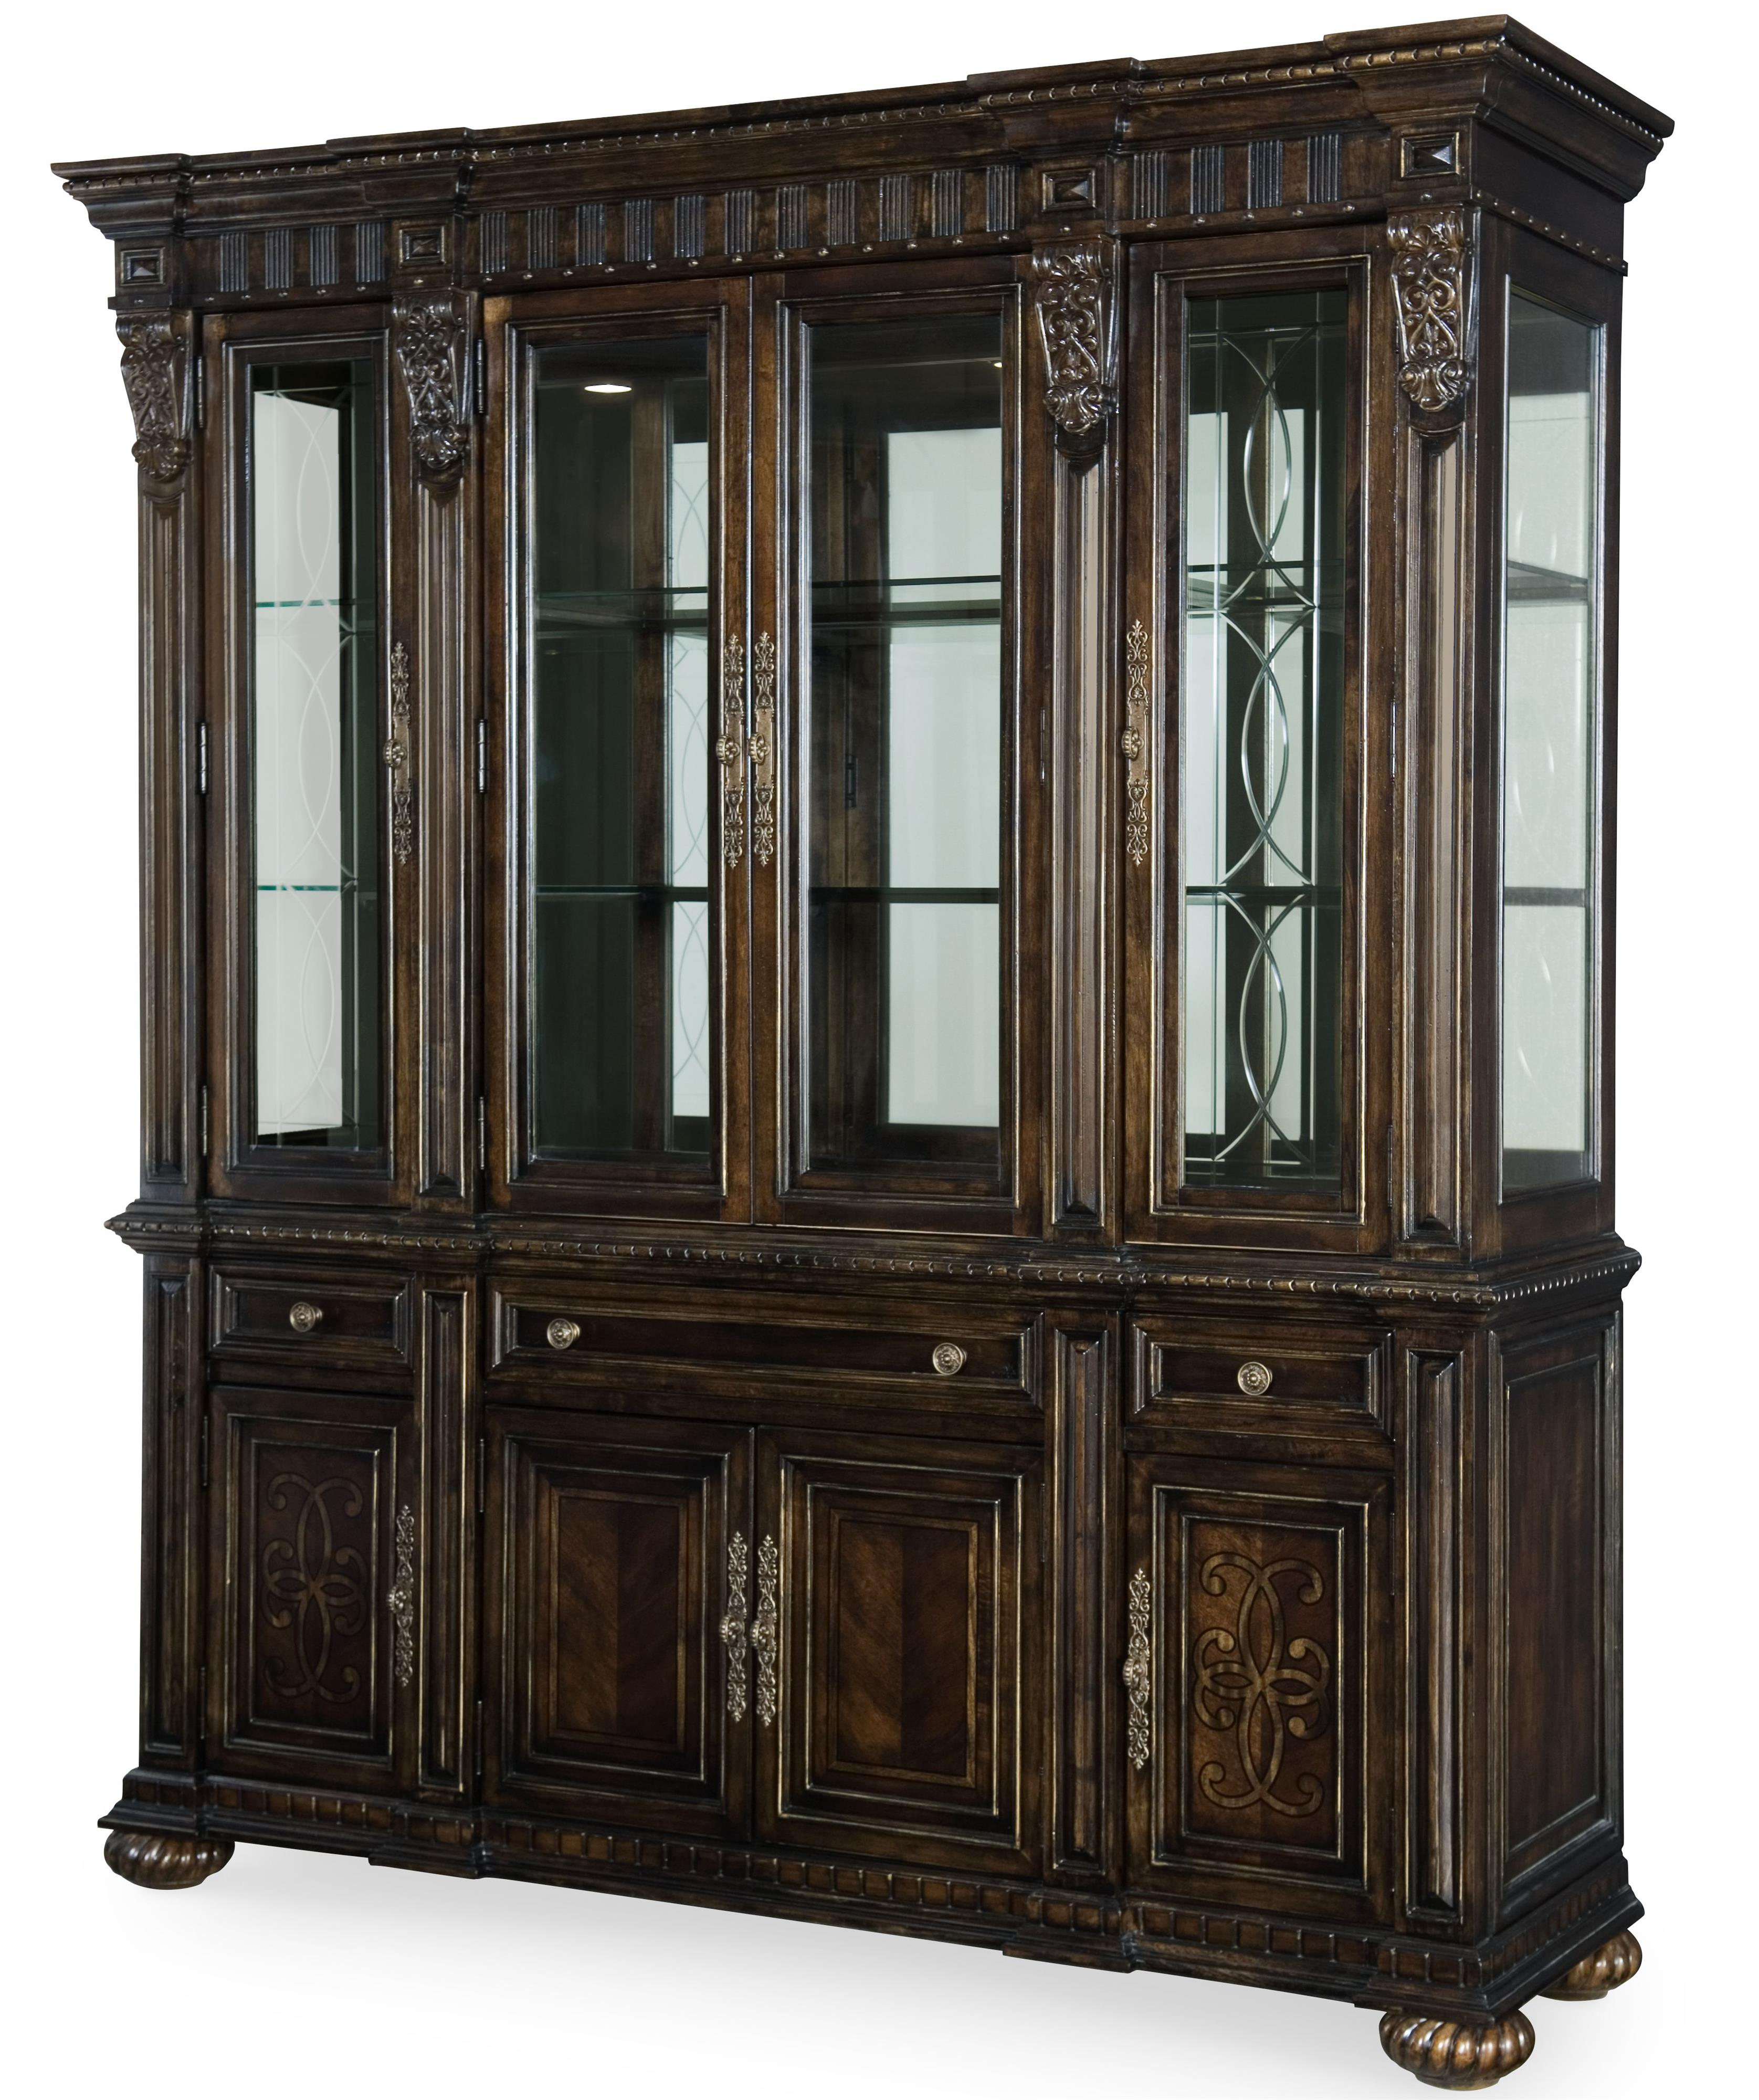 Legacy Classic La Bella Vita China Cabinet - Item Number: 4200-370+372